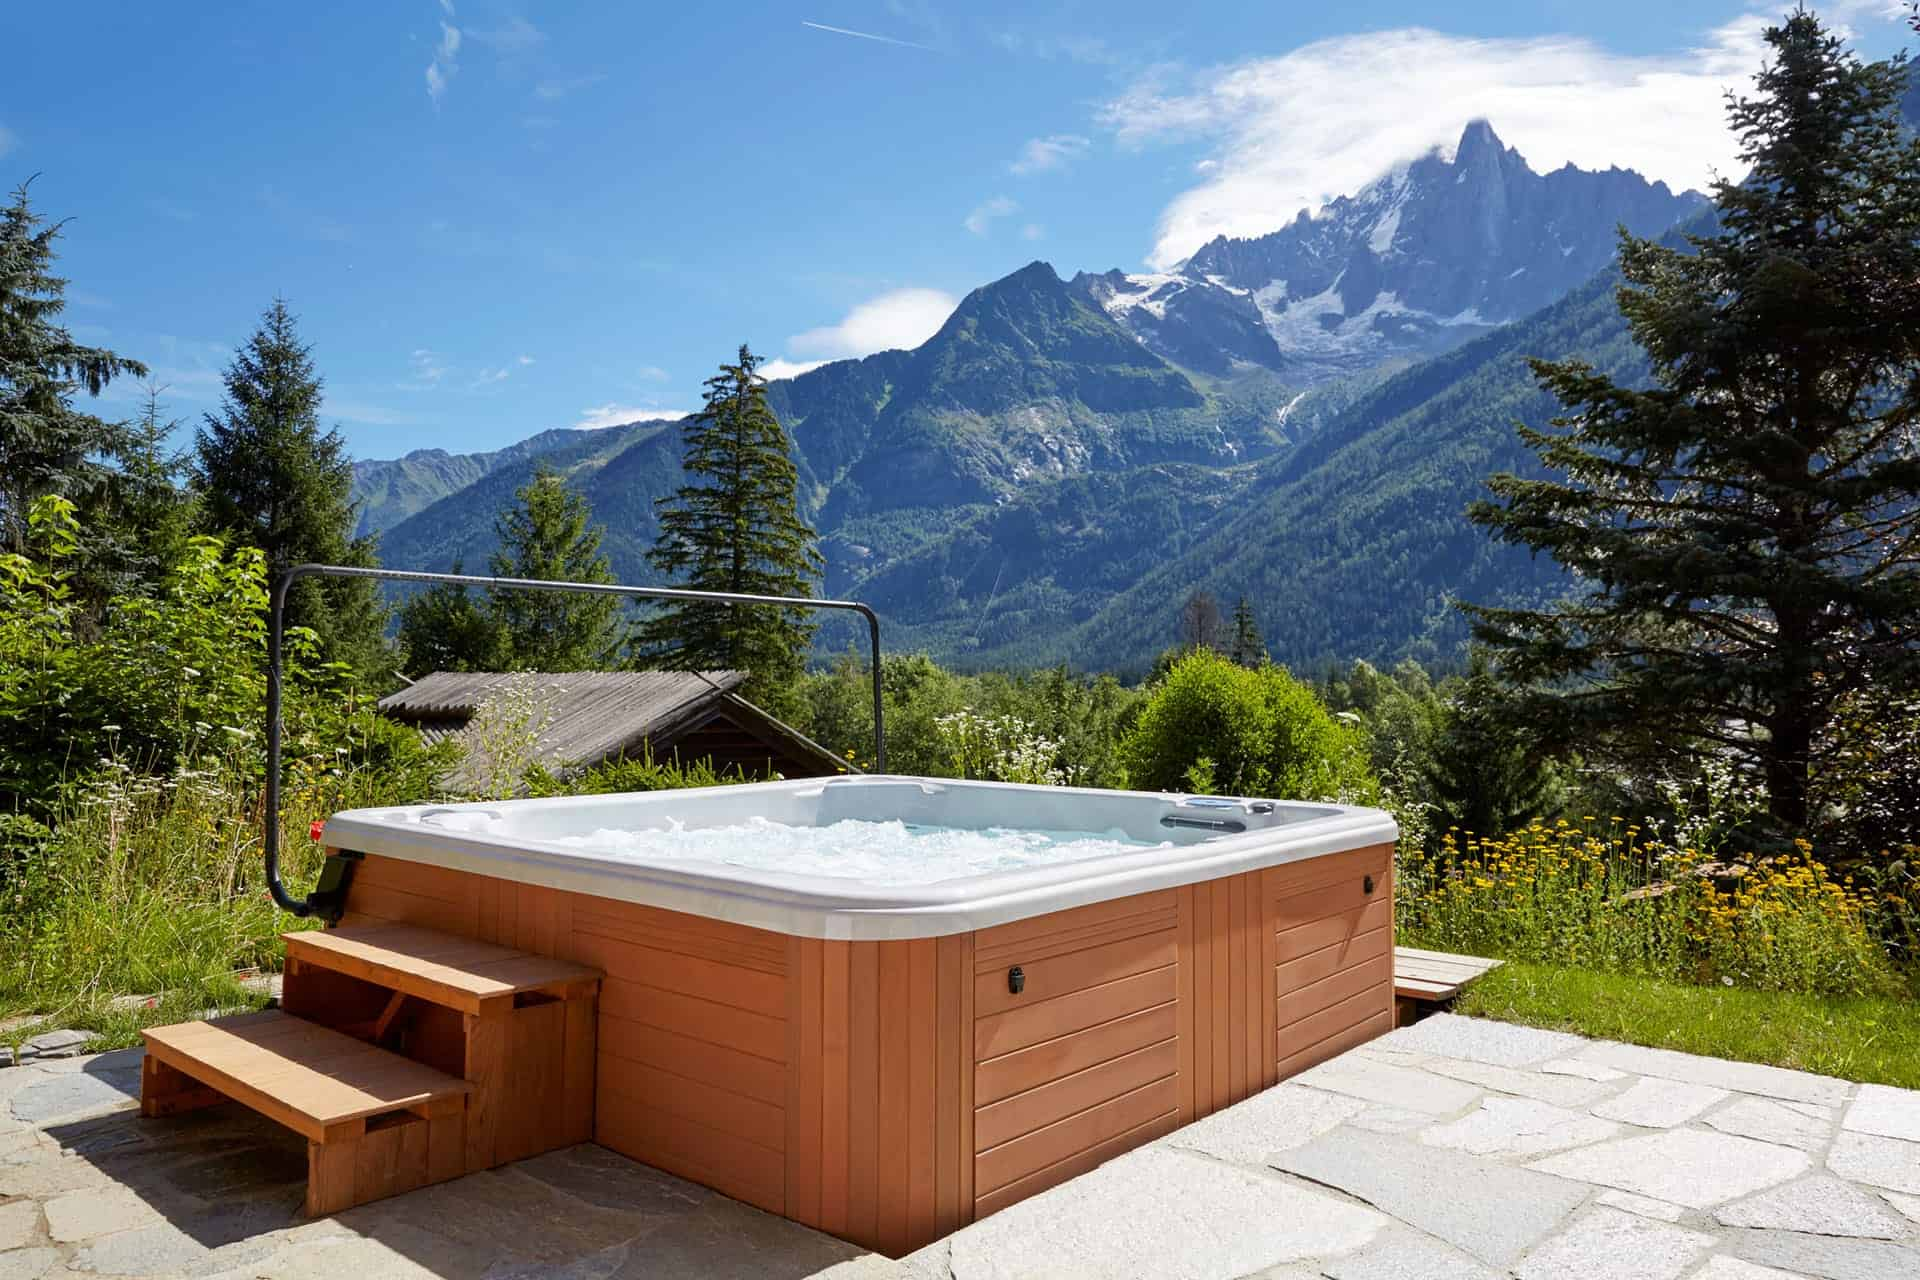 an outdoors jacuzzi surrounded by mountains